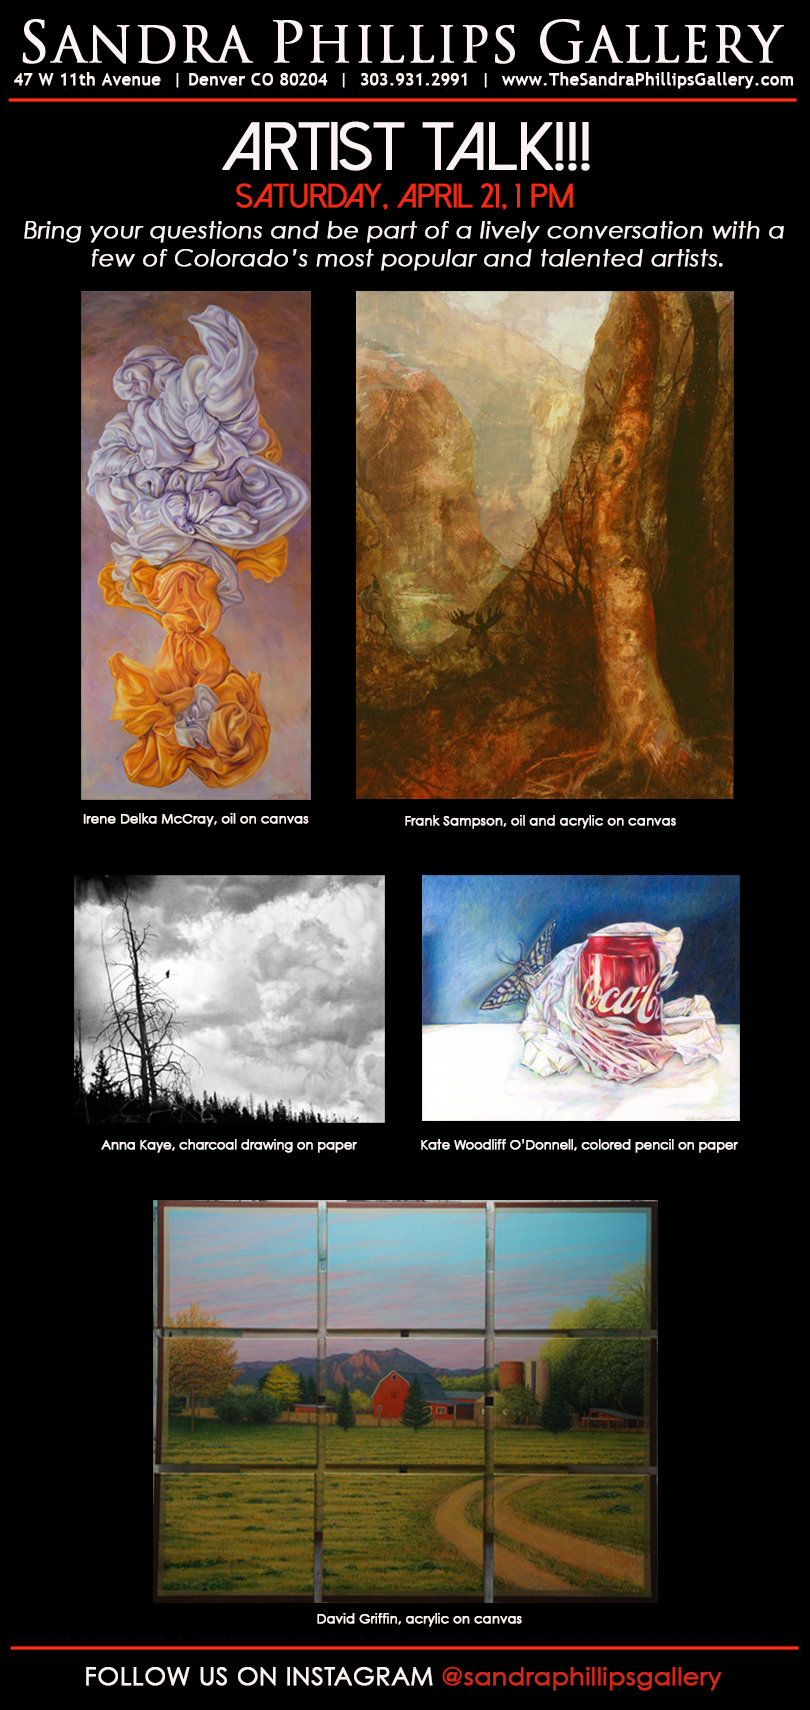 Conversations about Art - I'm excited to announce my upcoming artist talk at Sandra Philips Gallery for Counterpoint, an exhibit that explores referential abstraction and realism, rich in metaphor and symbolism. Please join us on Saturday, April 21st at 1:00 p.m. for an artist talk that will highlight each artist's process and content with a special emphasis on art in a digital social media world.